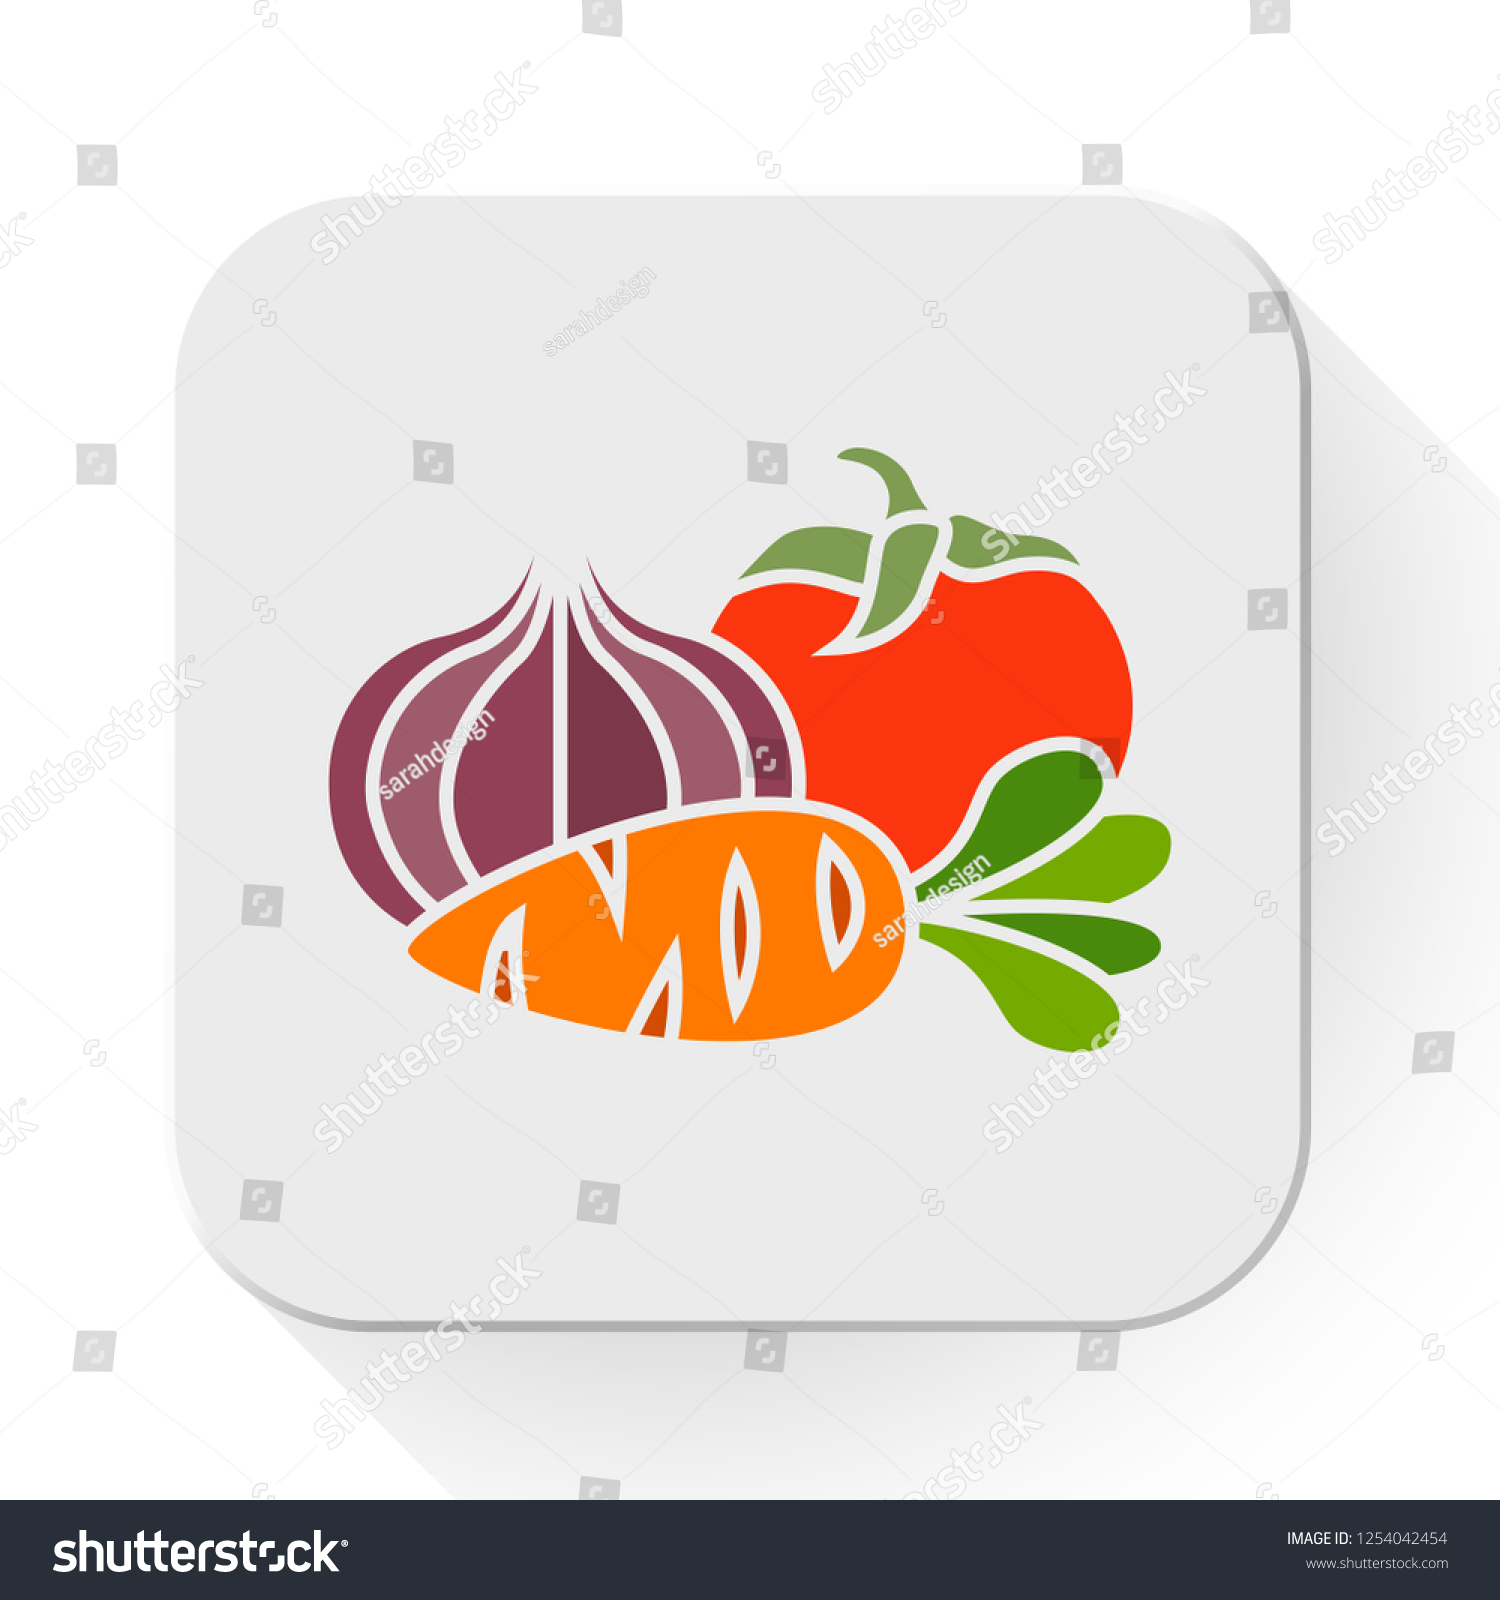 vector vegetables icon. Flat illustration of vegetables. vegetables isolated on white background. vegetables sign symbol  #1254042454